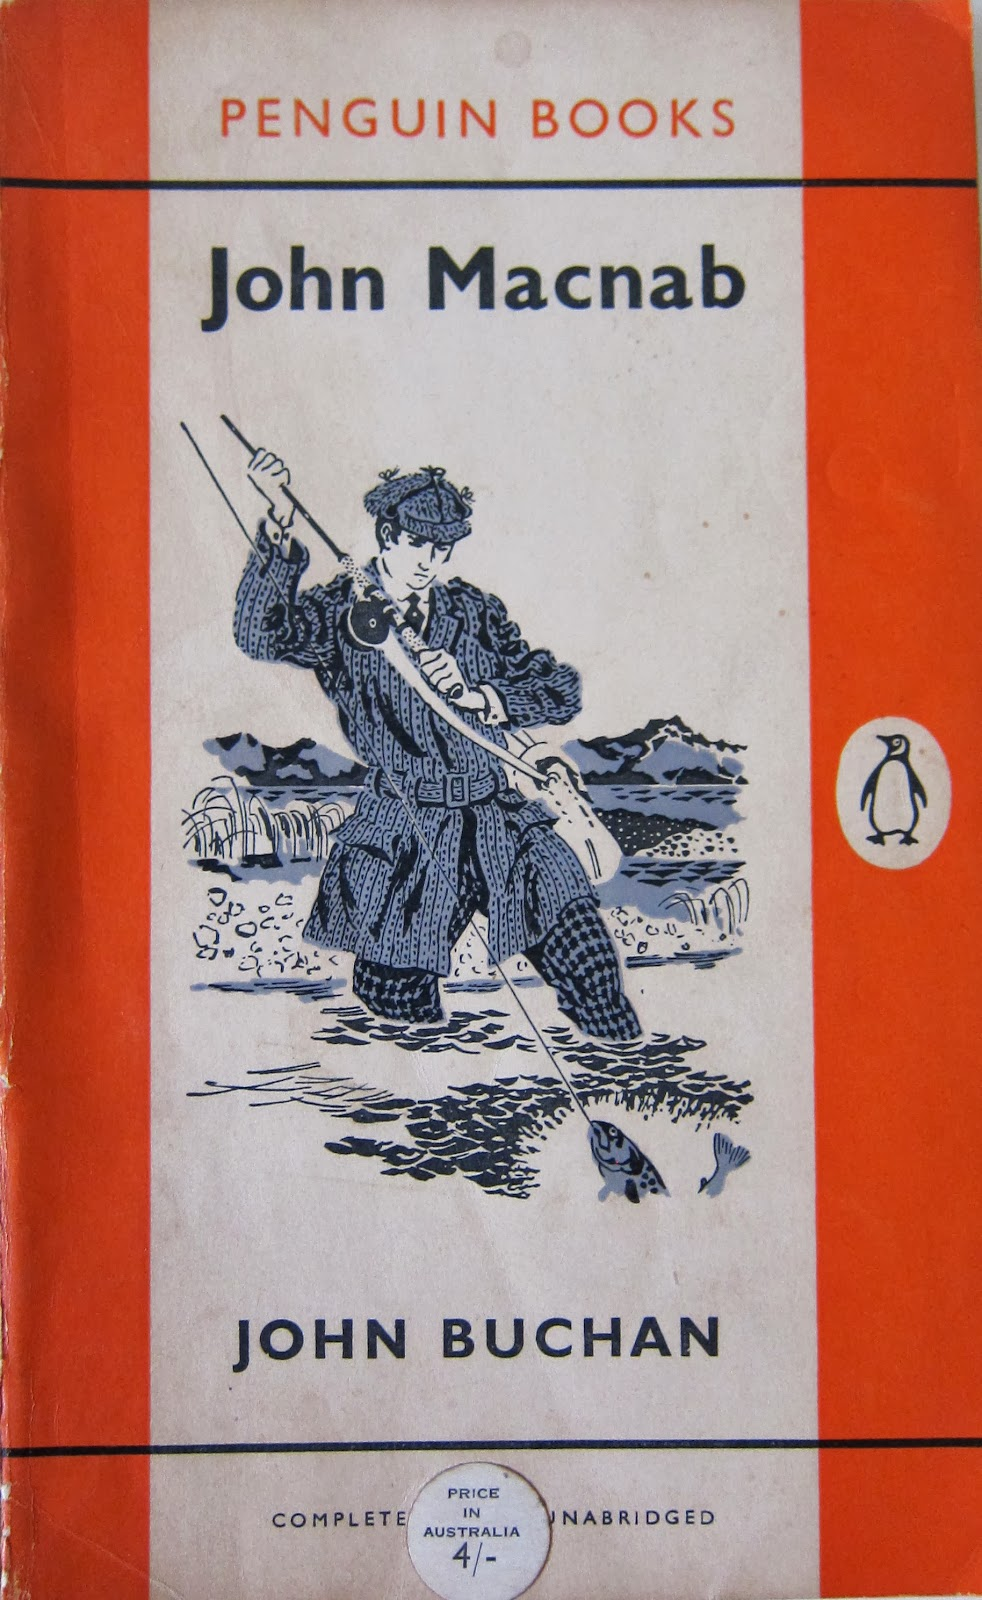 Penguin Book Covers Vintage ~ Vintage penguins covers by stephen russ part one